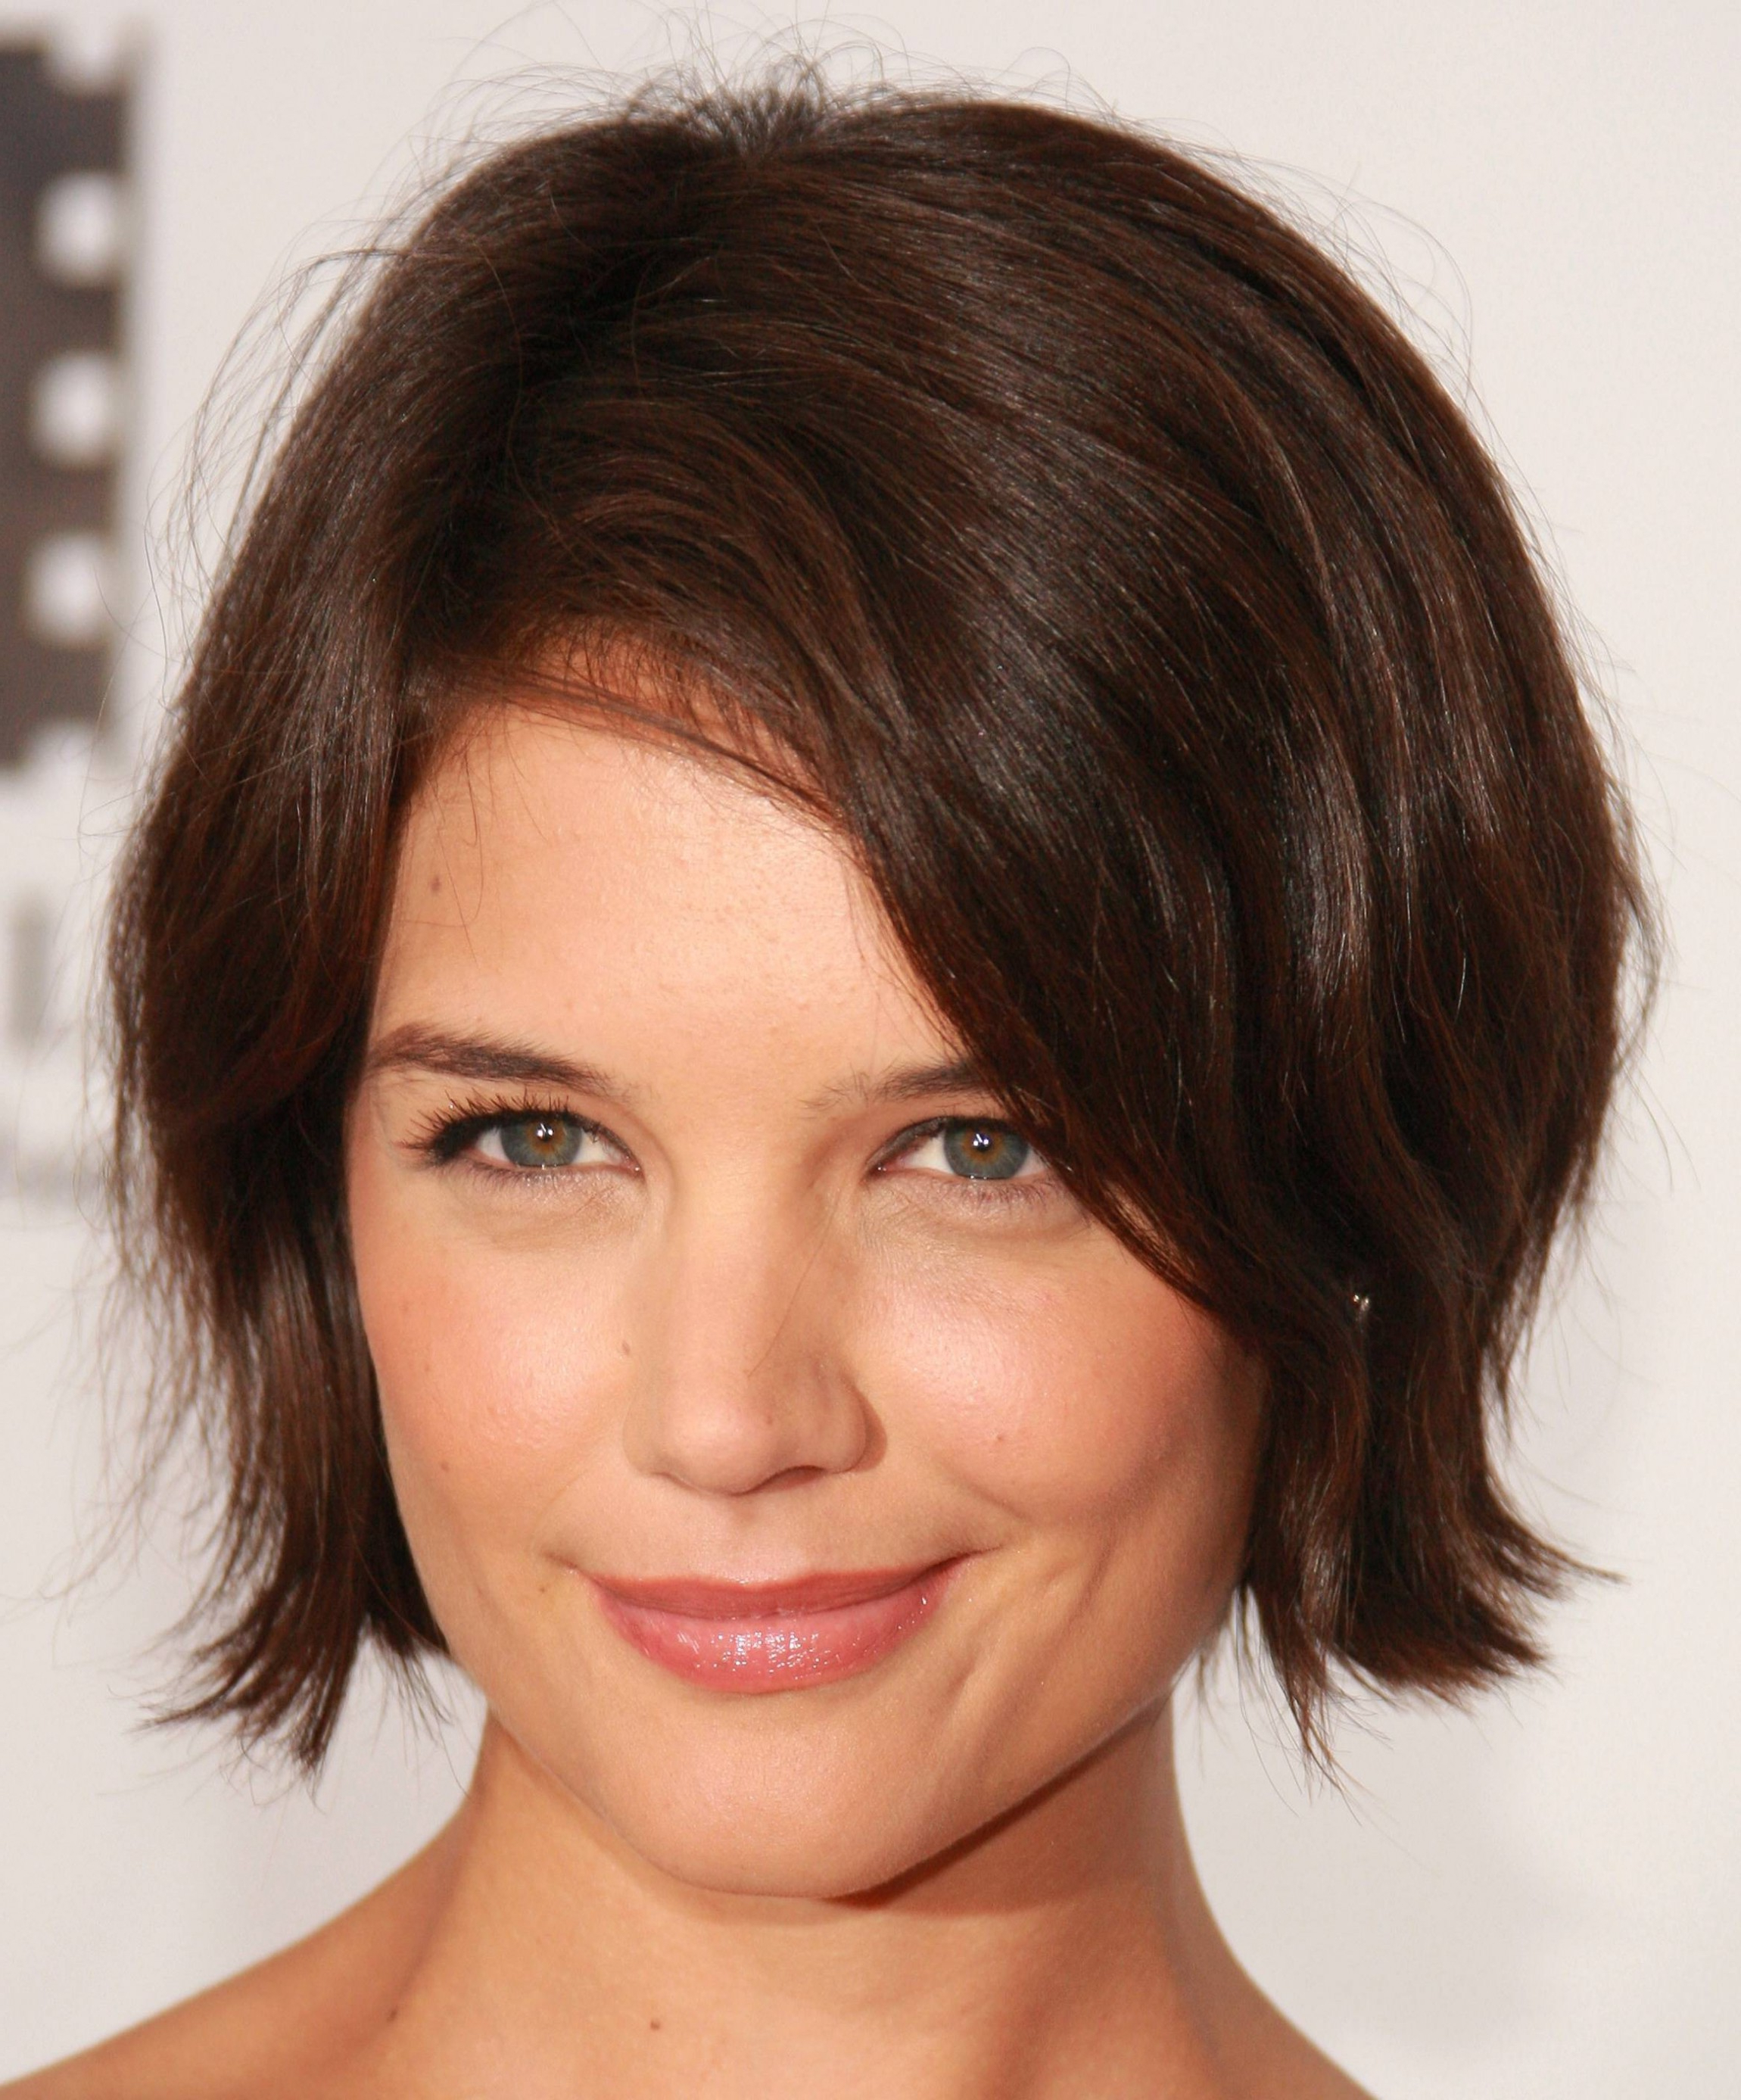 Best Short Hairstyles – Cute Hair Cut Guide For Round Face Shape Intended For Cute Color For Short Hair (View 22 of 25)